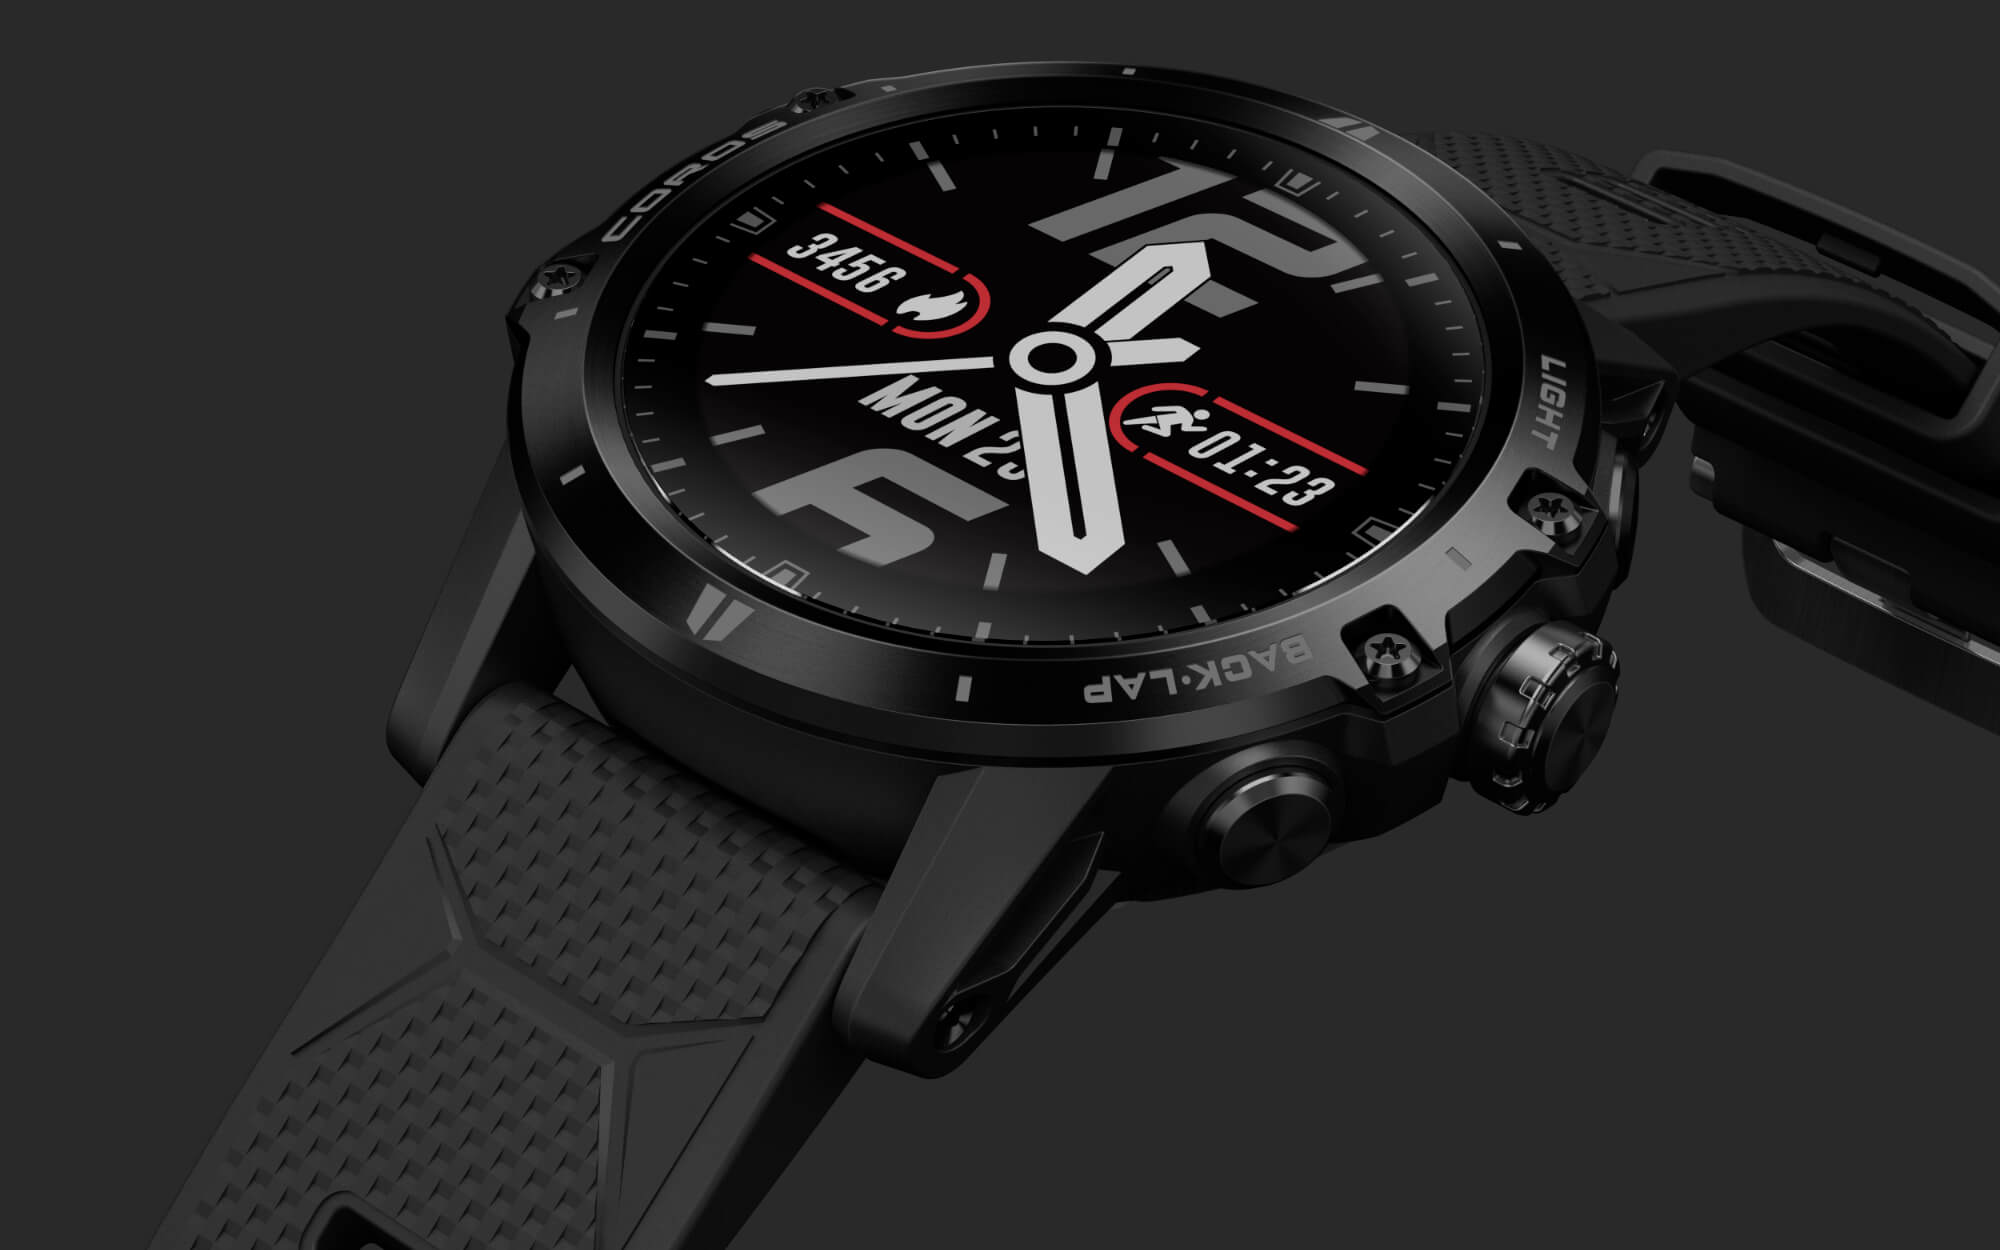 COROS Vertix - GPS adventure watch with unmatched 60 hours battery life